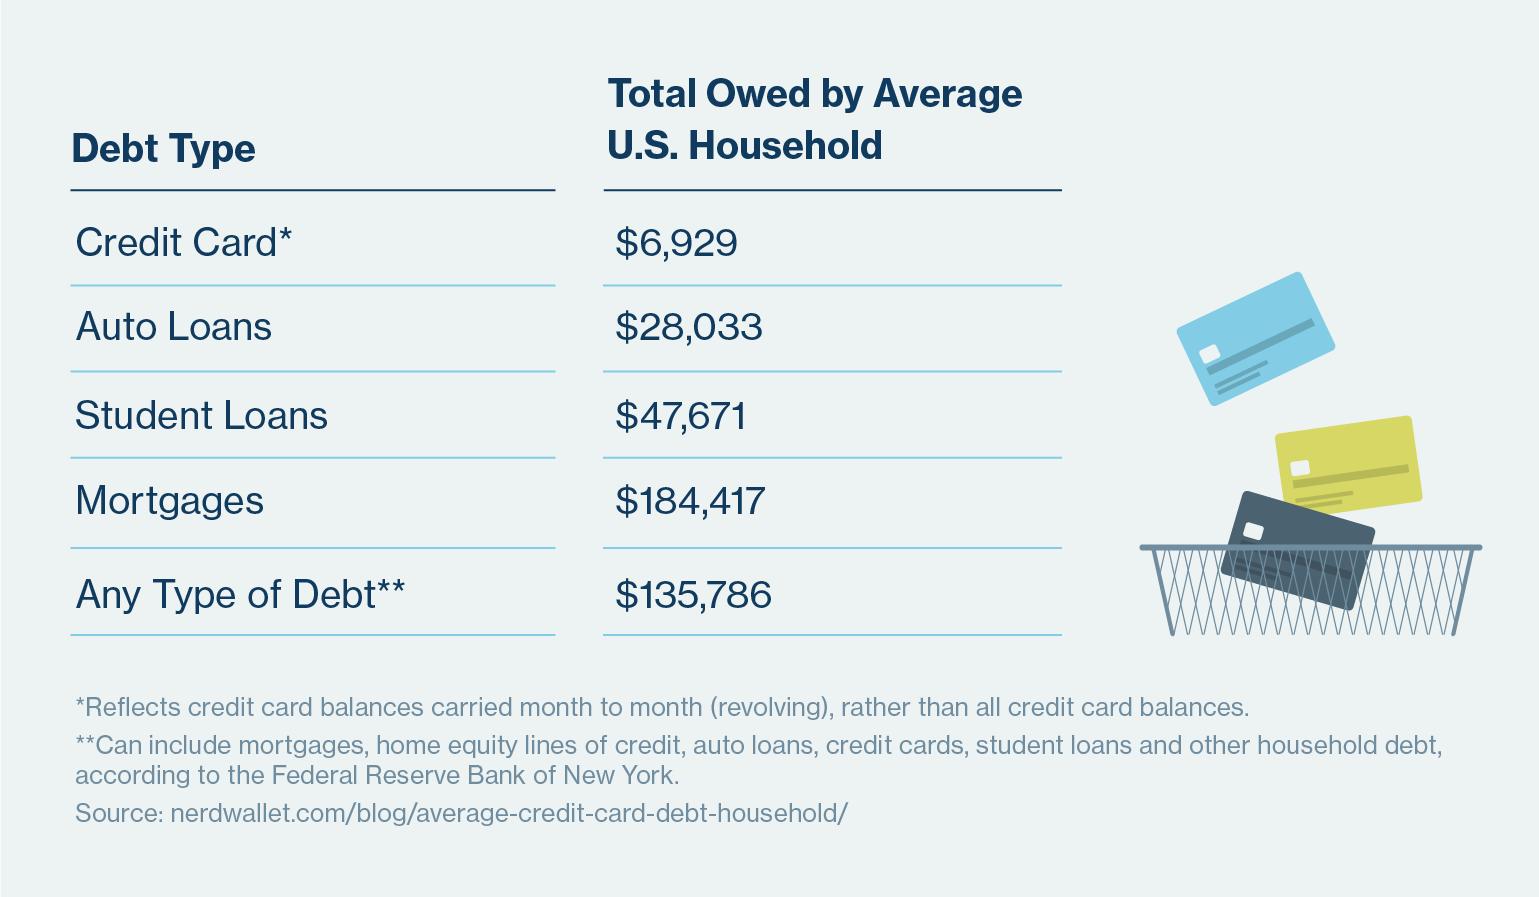 average US household debt by debt type table